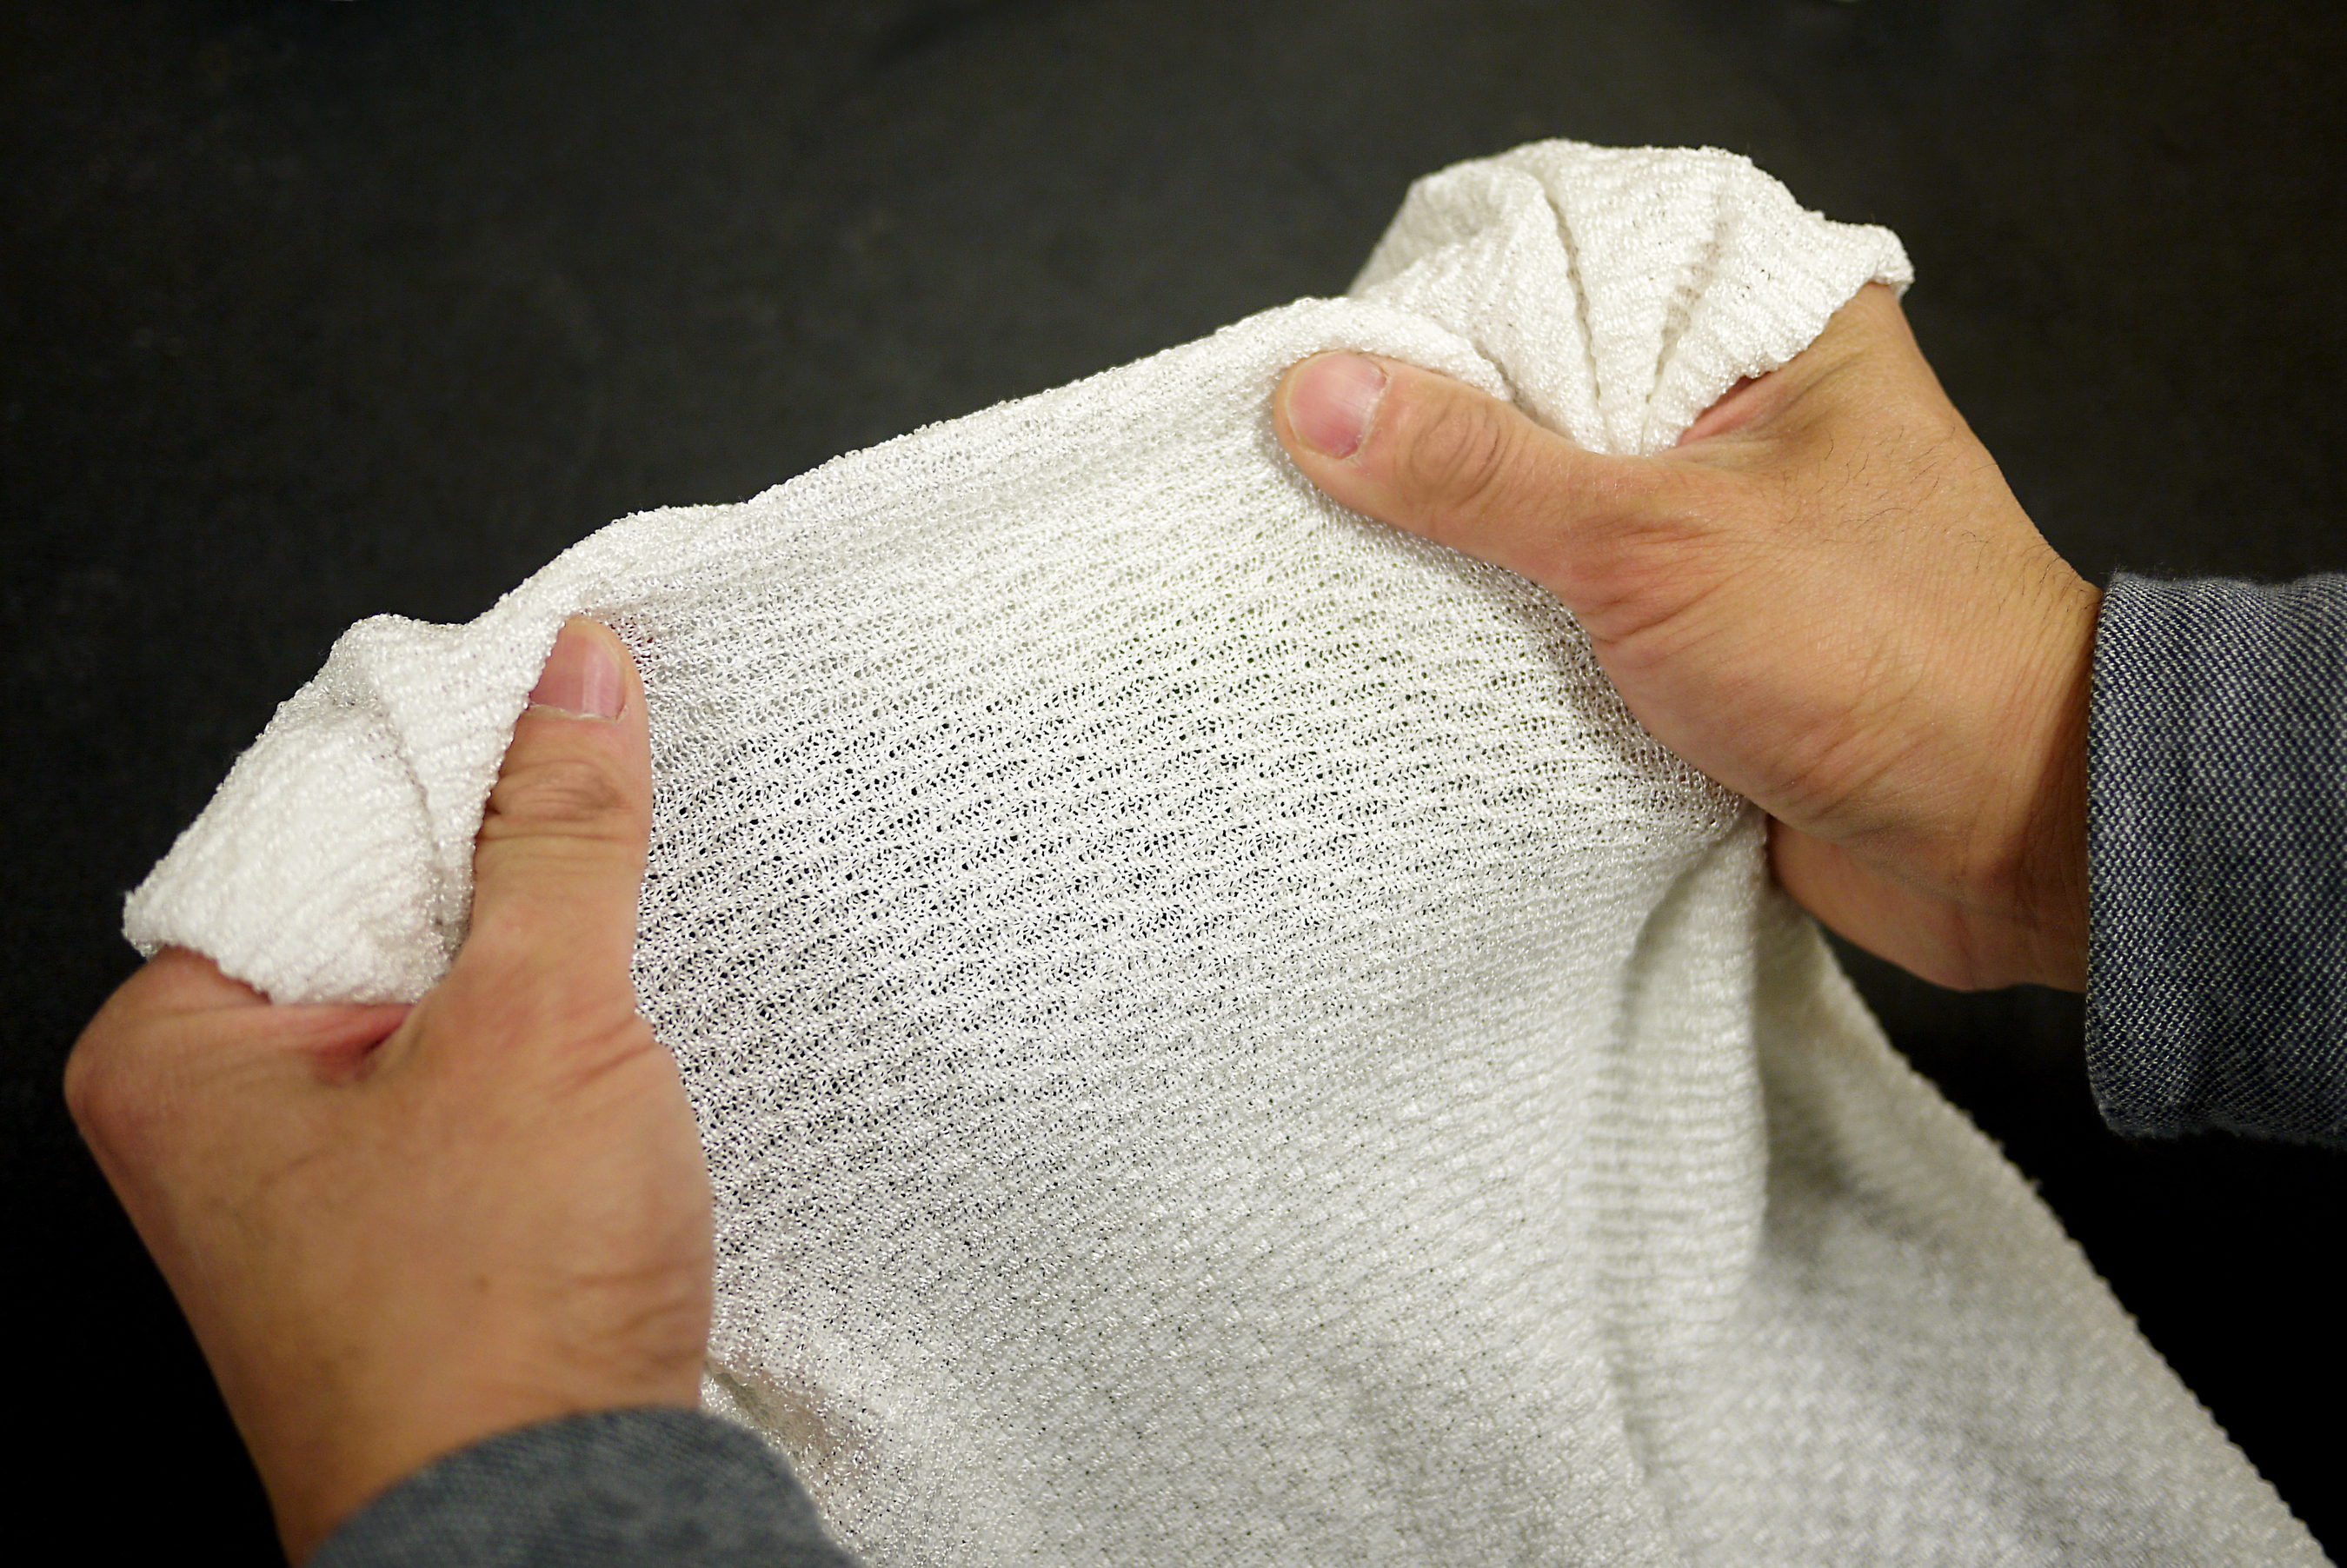 This new fabric being developed by University of Maryland scientists YuHuang Wang and Ouyang Min is the first textile to automatically change properties to trap or release heat depending on conditions. Photo: Faye Levine, University of Maryland